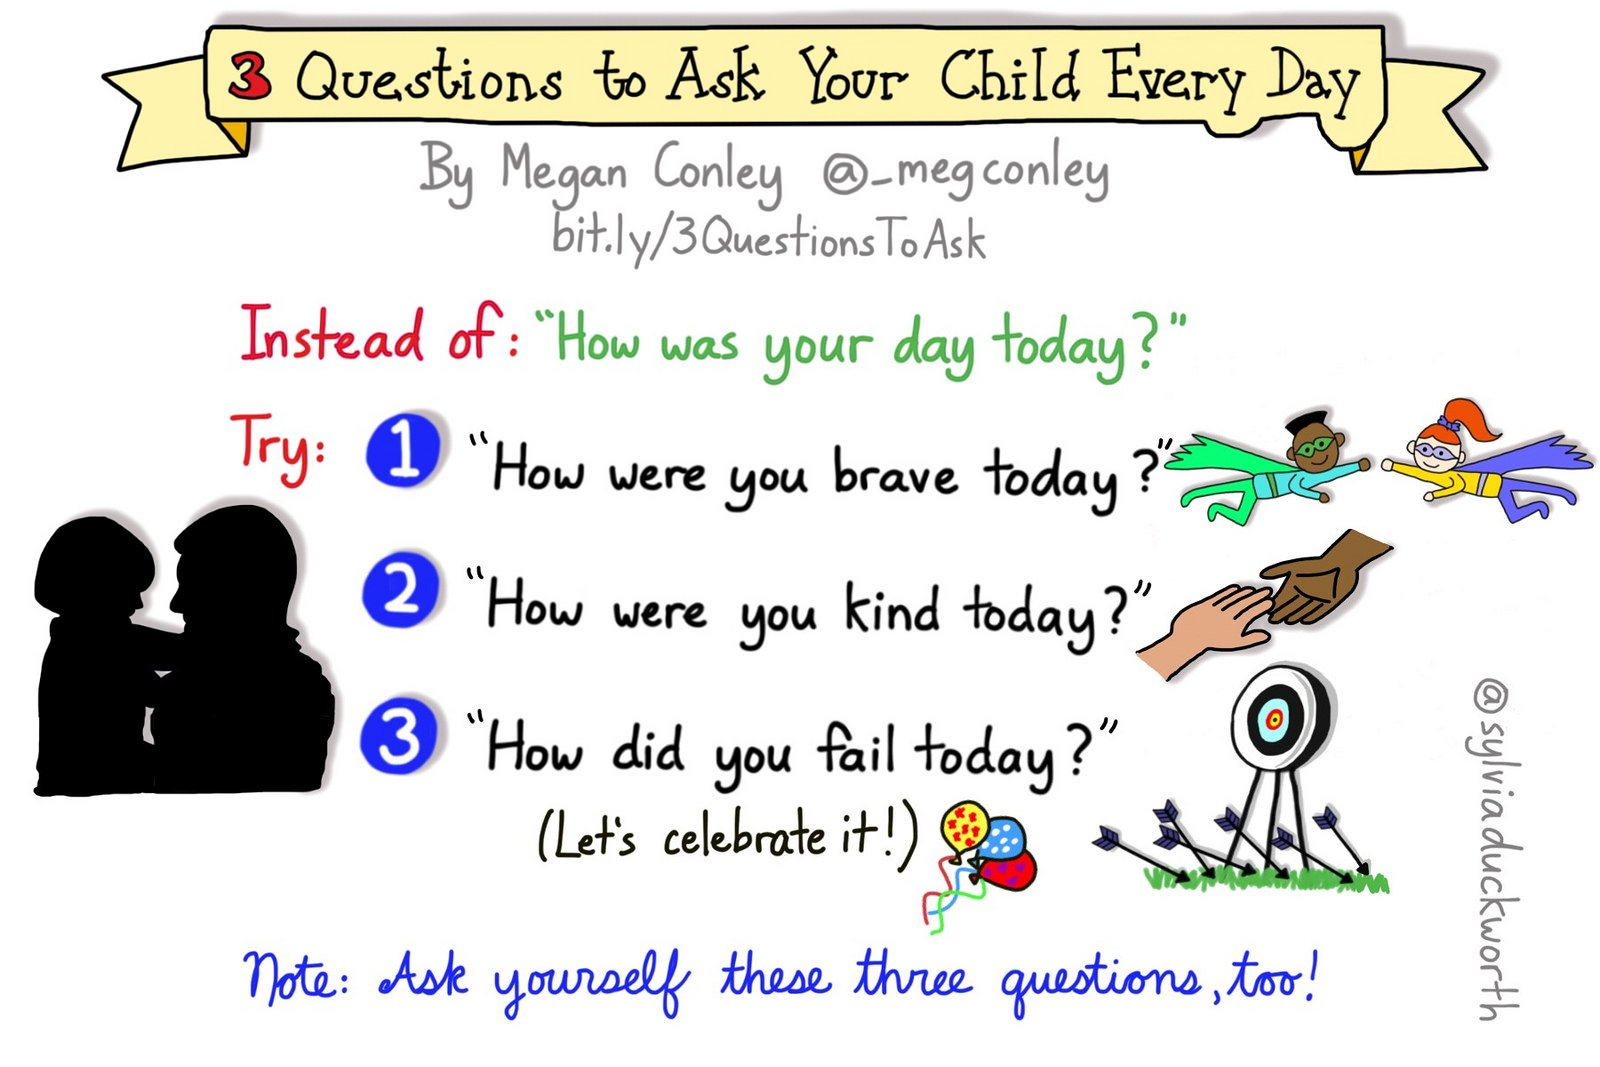 "3 questions to ask your child instead of ""how was your day?"" #sketchnote by @sylviaduckworth @_megconley #edchat #parenting #growthmindset https://t.co/lfZnpYOaLV"